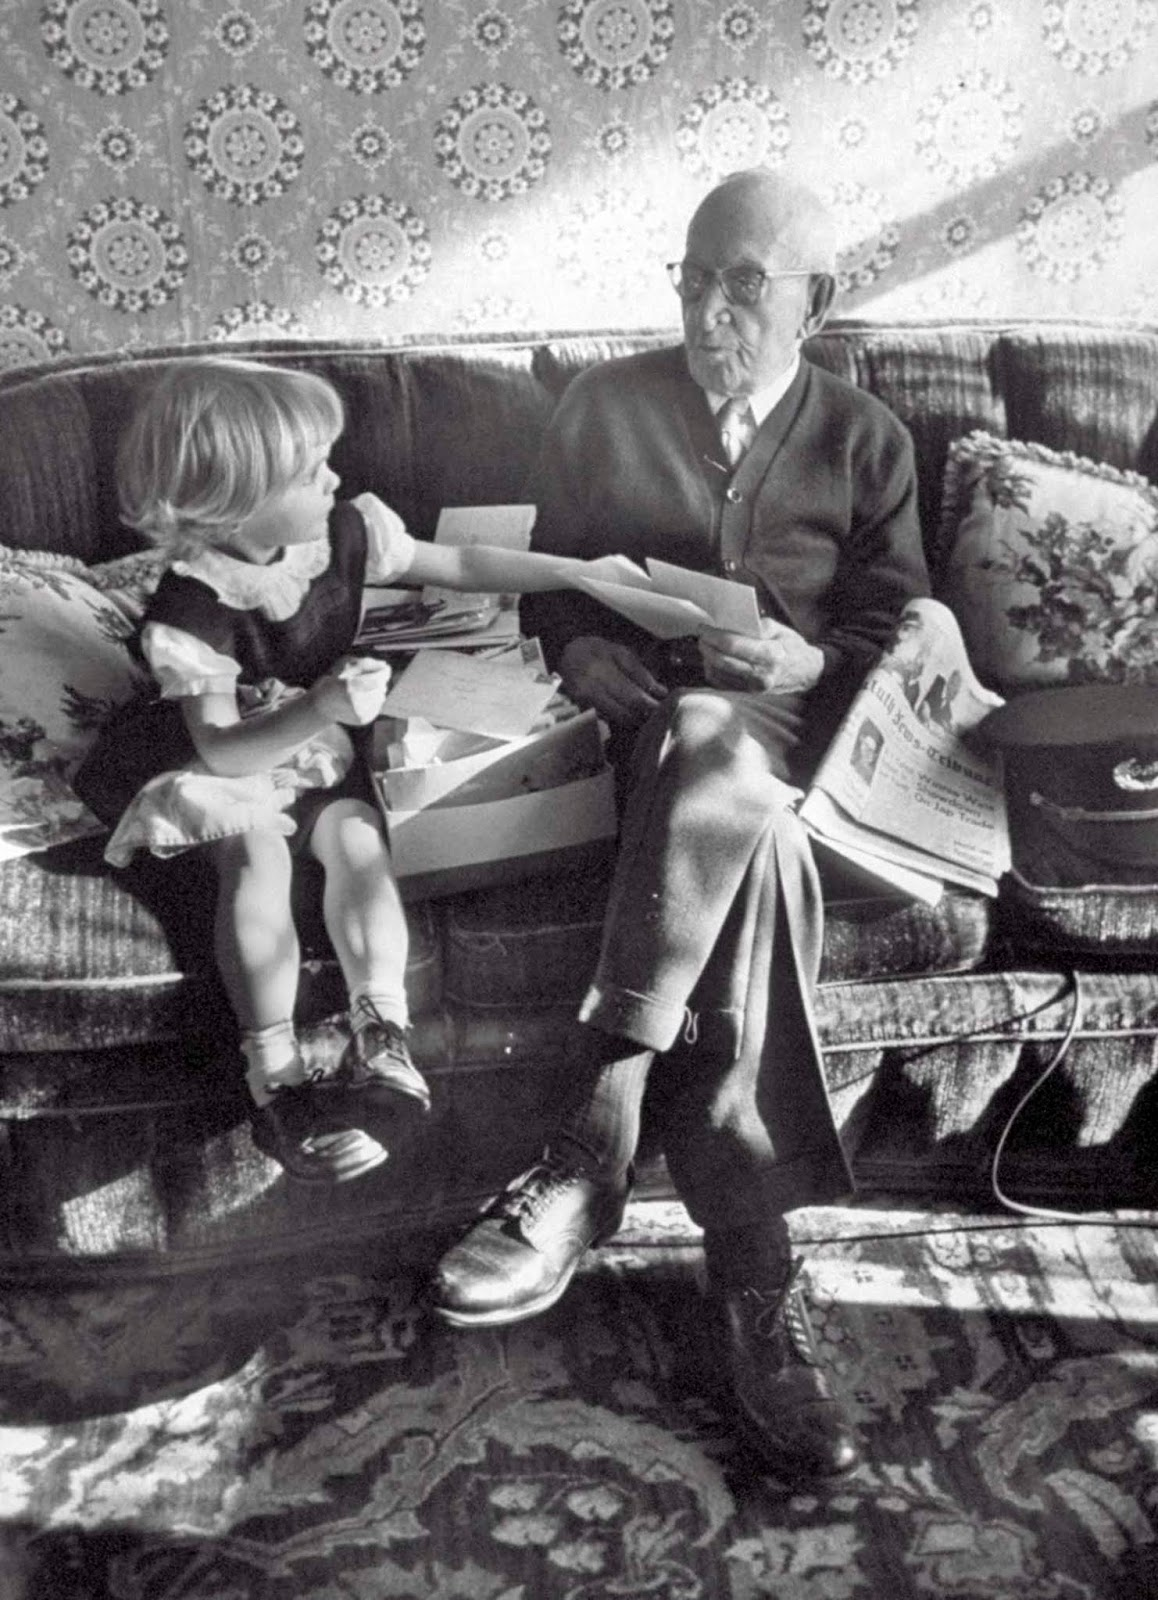 107 years old last remaining GAR Civil War Veteran Albert Woolson, relaxing on the couch while a little girl helps him sort through some mail. 1954.